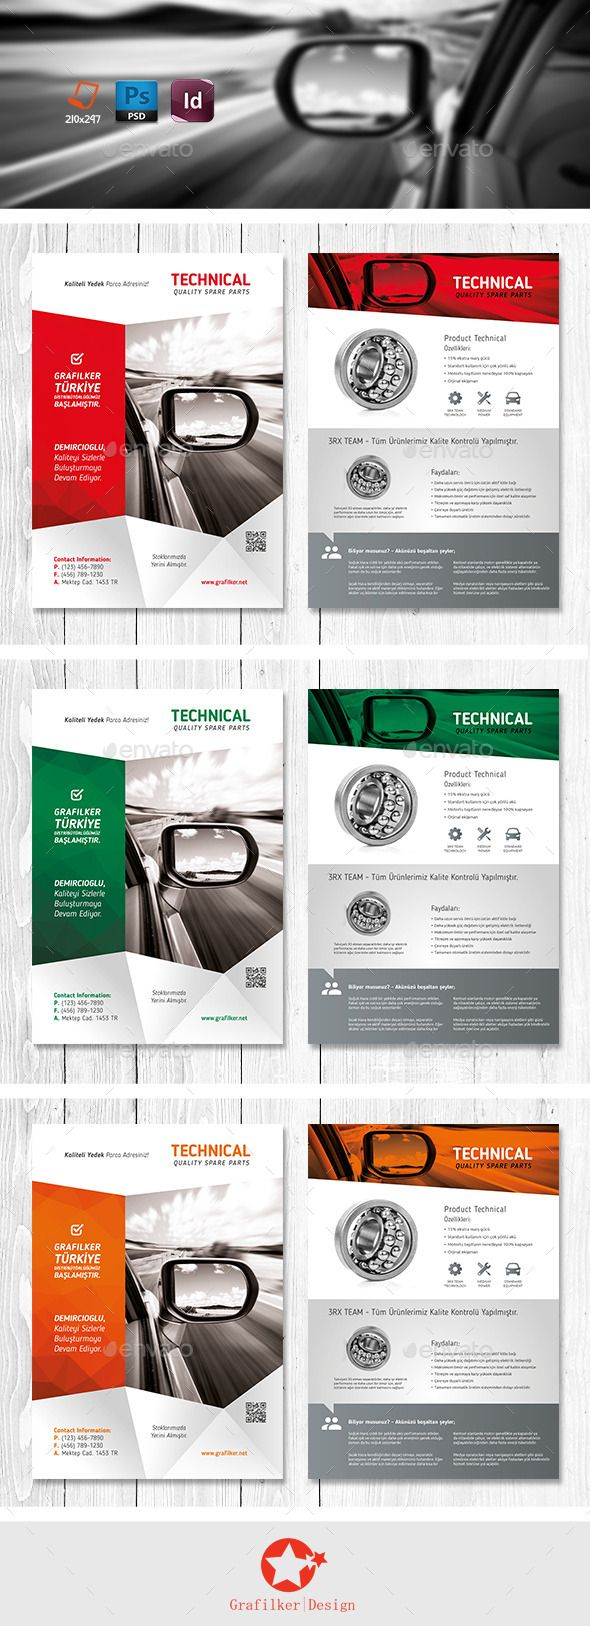 technical data product flyer templates design data sheets and technical data product flyer templates design graphicriver net